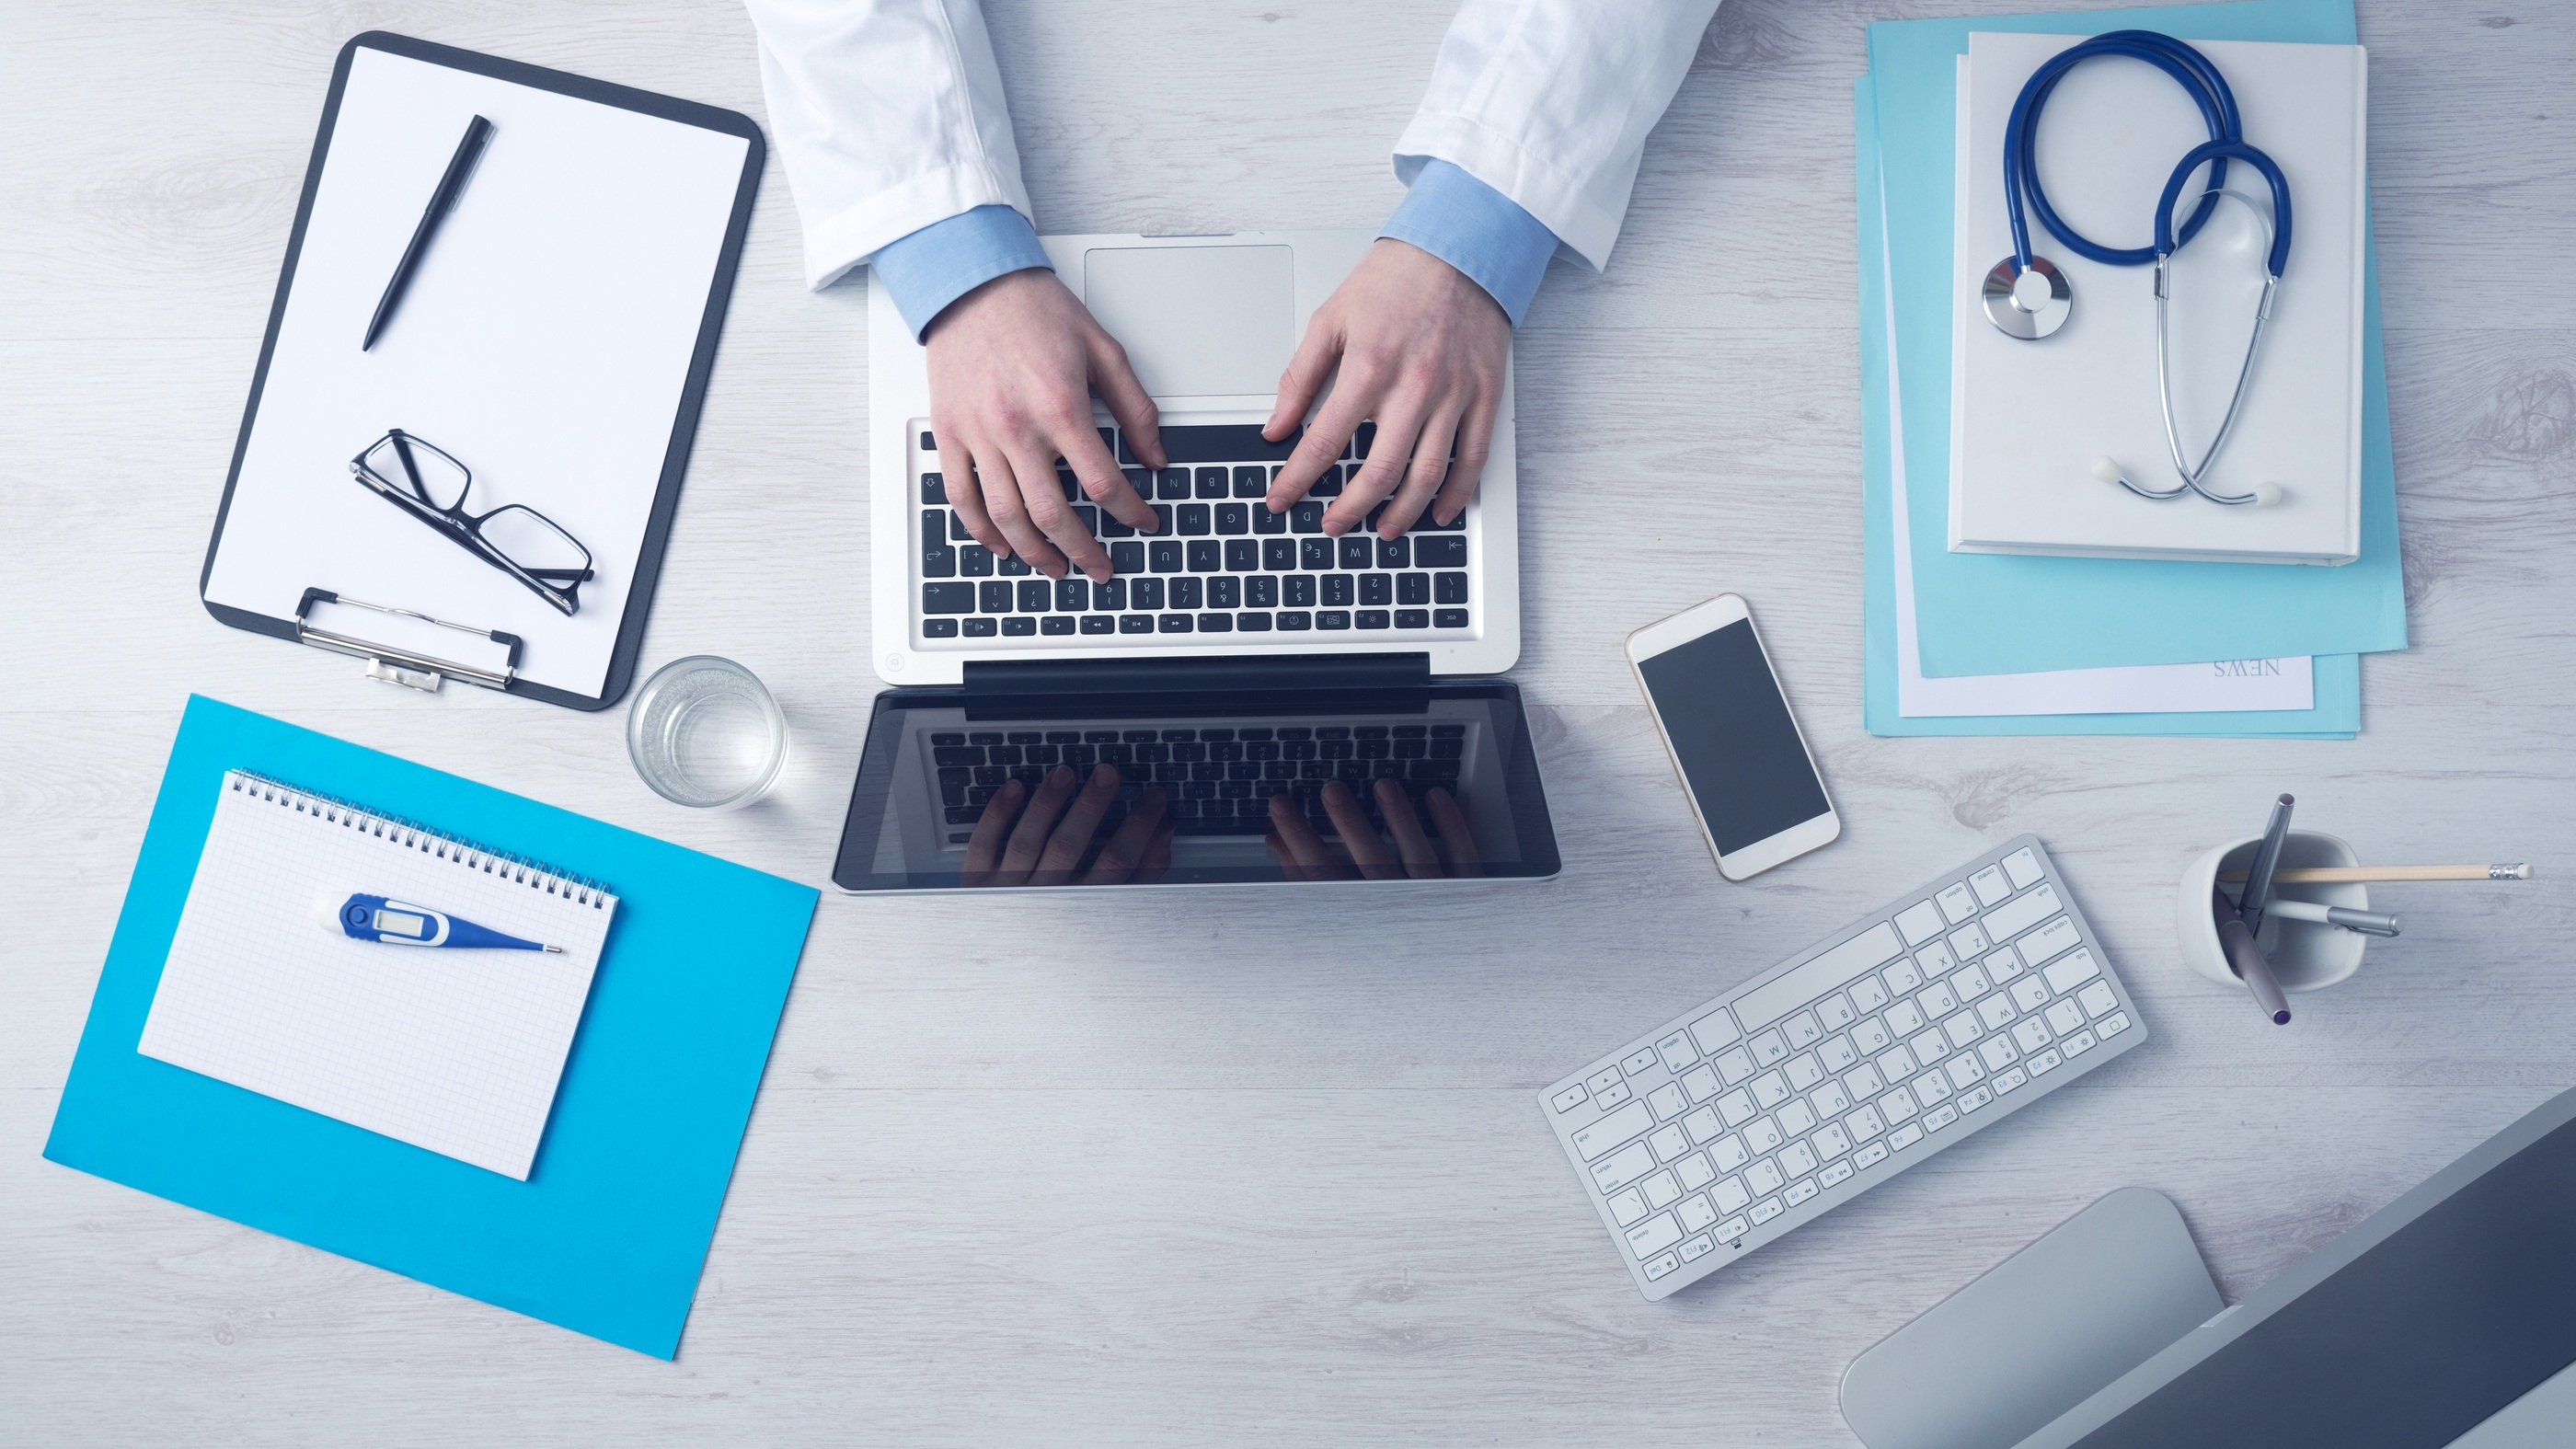 doctor with technology devices related to medical profession